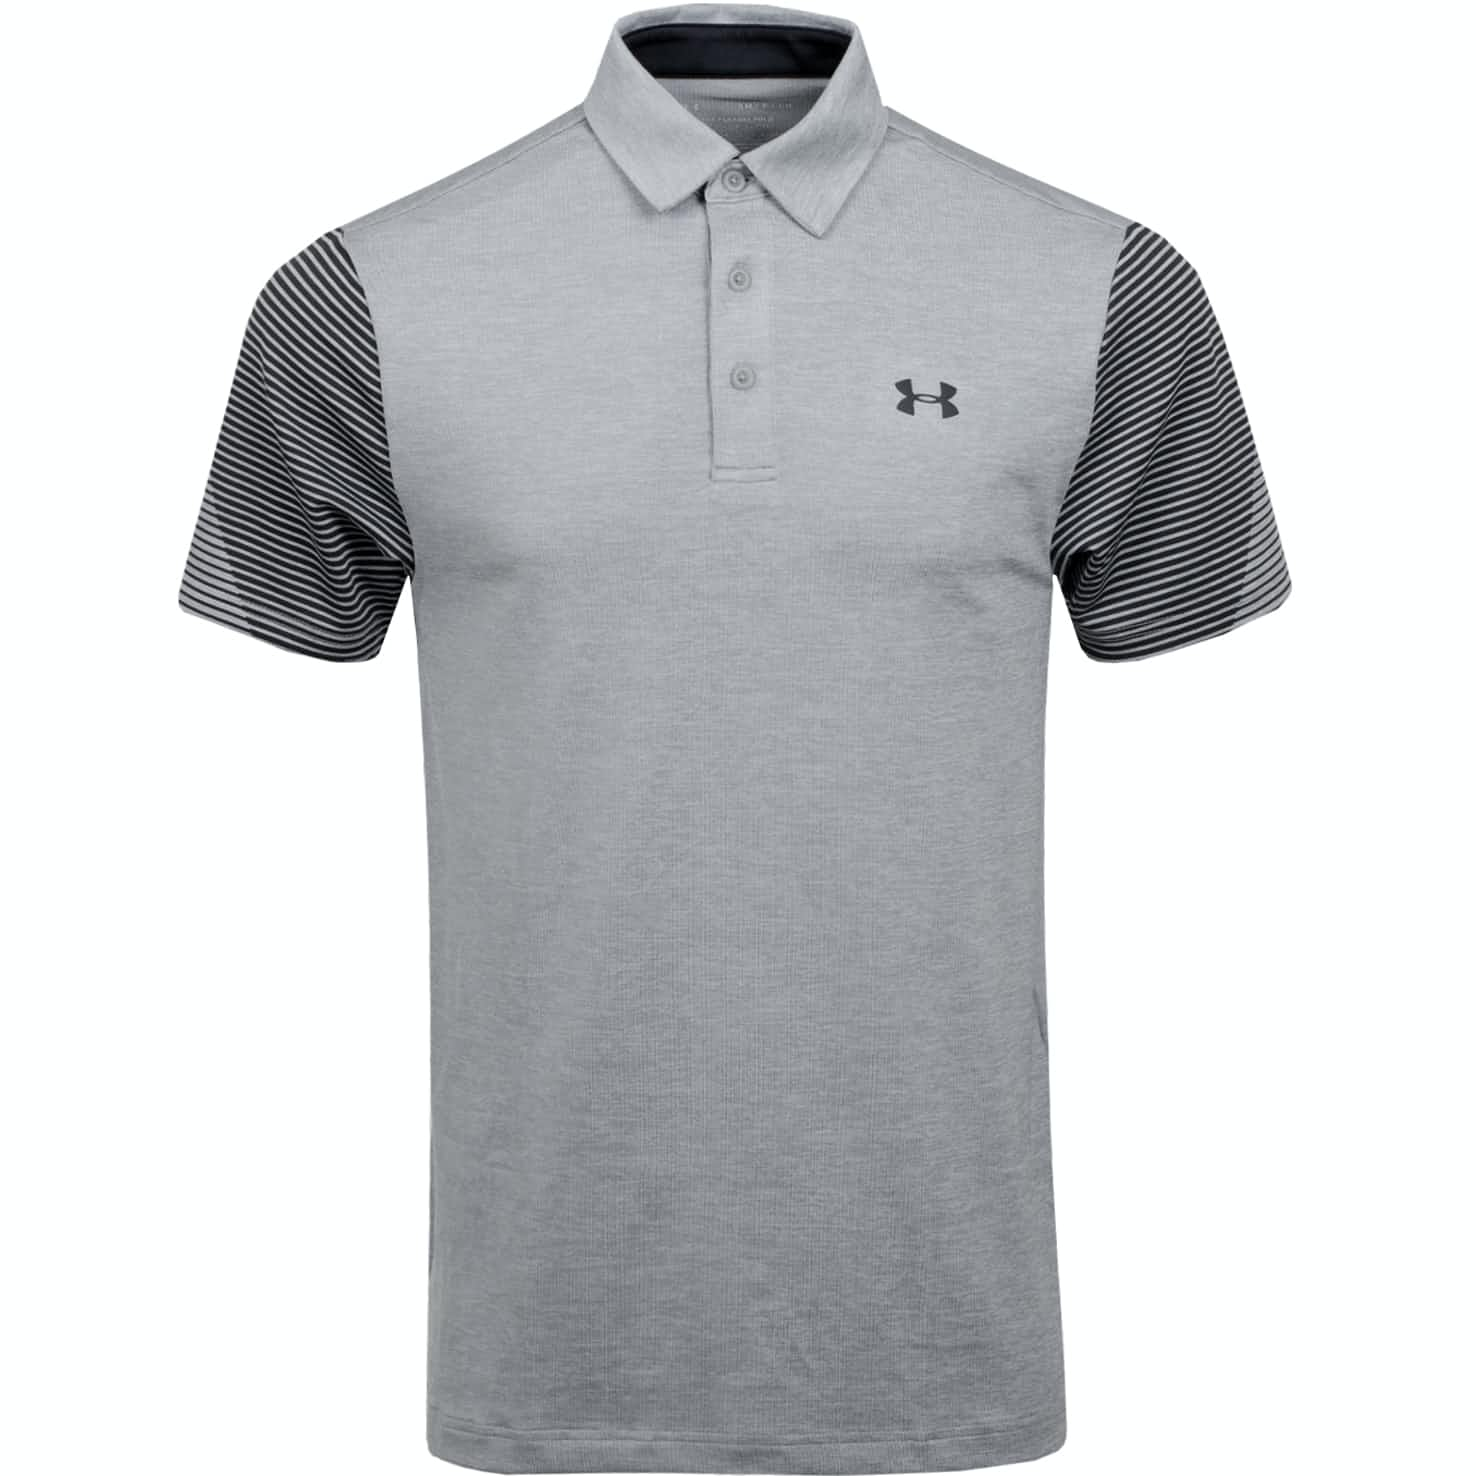 Playoff Polo 2.0 Steel/Black - AW19